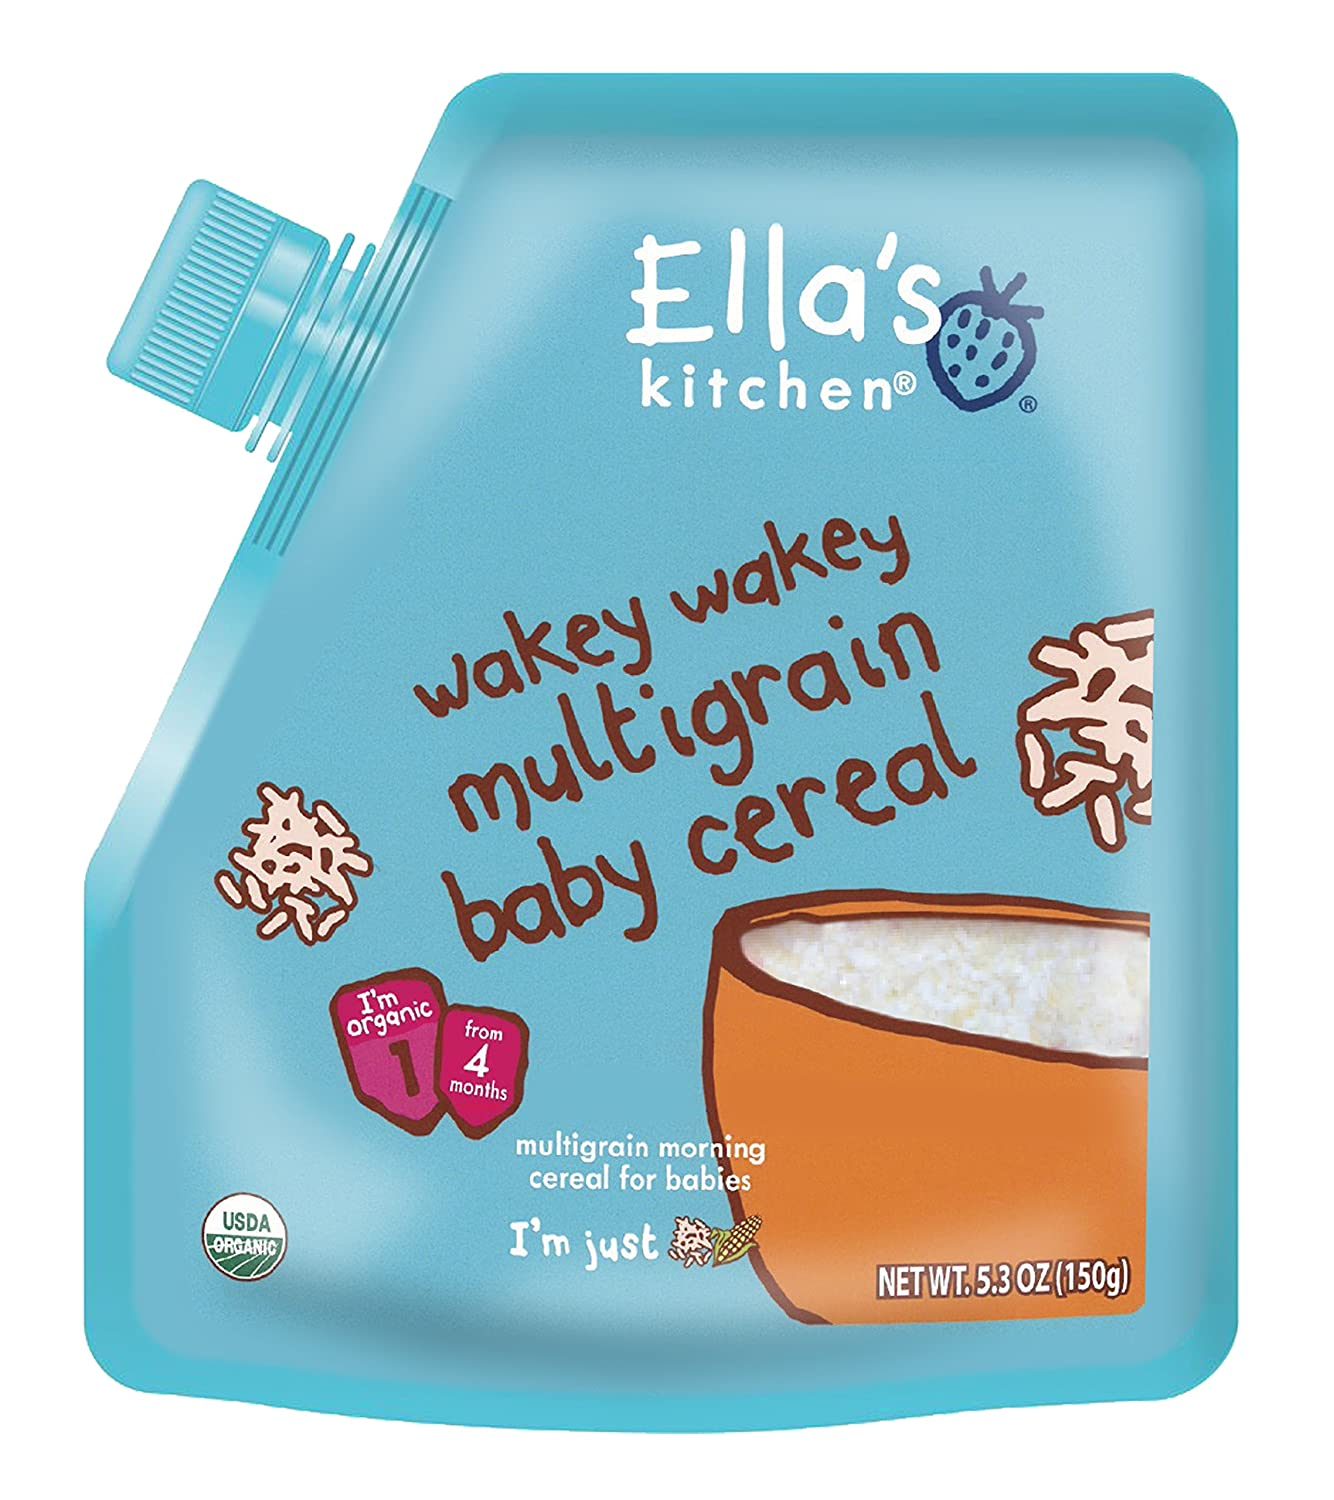 Ella\'s Kitchen Organic Stage 1, Baby Cereal, 5.3 Ounce: Amazon.com ...